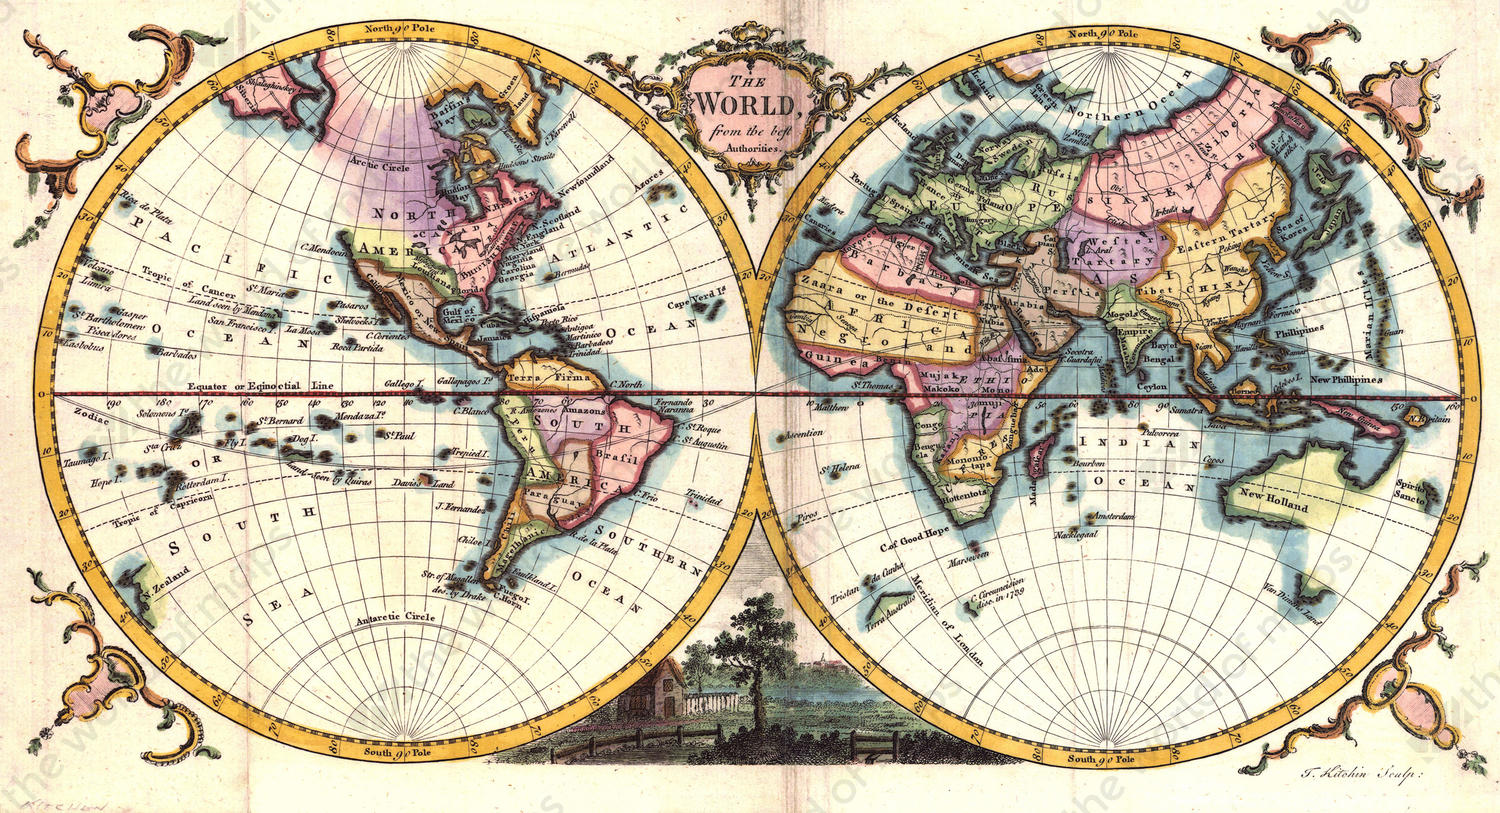 Digital world map year 1780 kitchin the world of maps digital world map year 1780 kitchin gumiabroncs Image collections